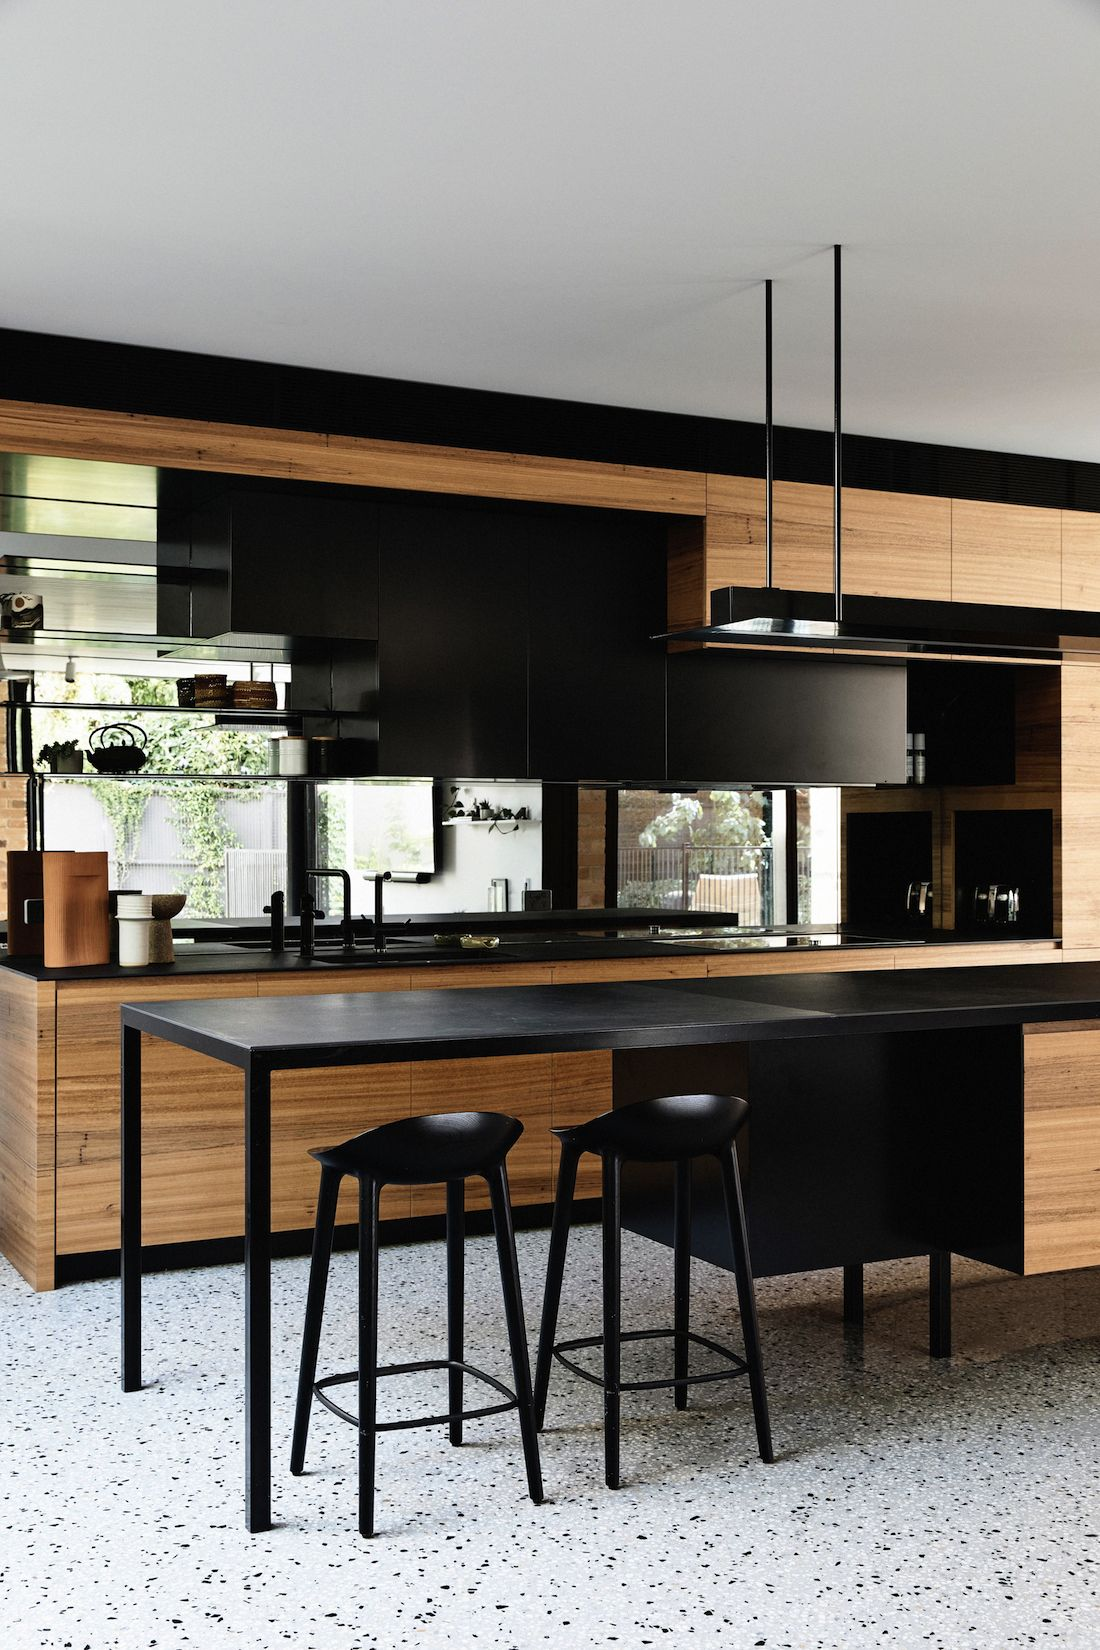 Timber and black kitchen in Garden House